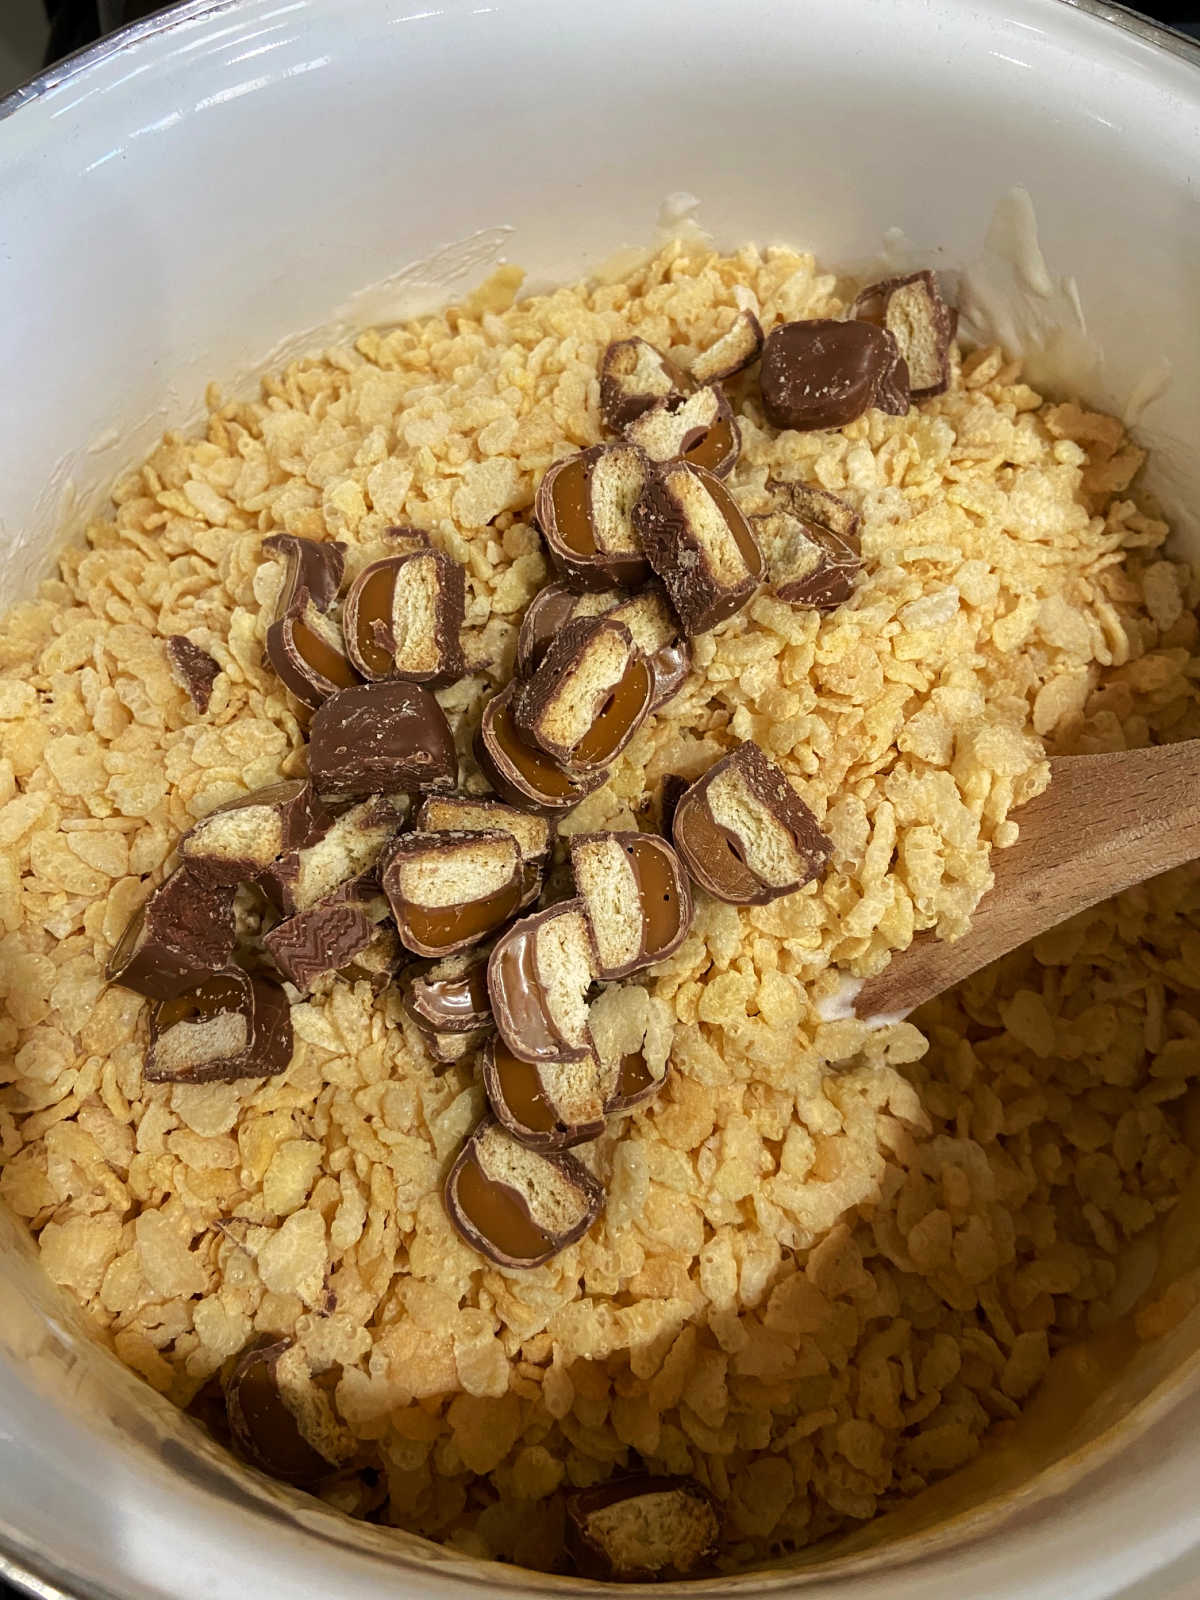 Adding the chopped Twix bars to Rice Krispie cereal.